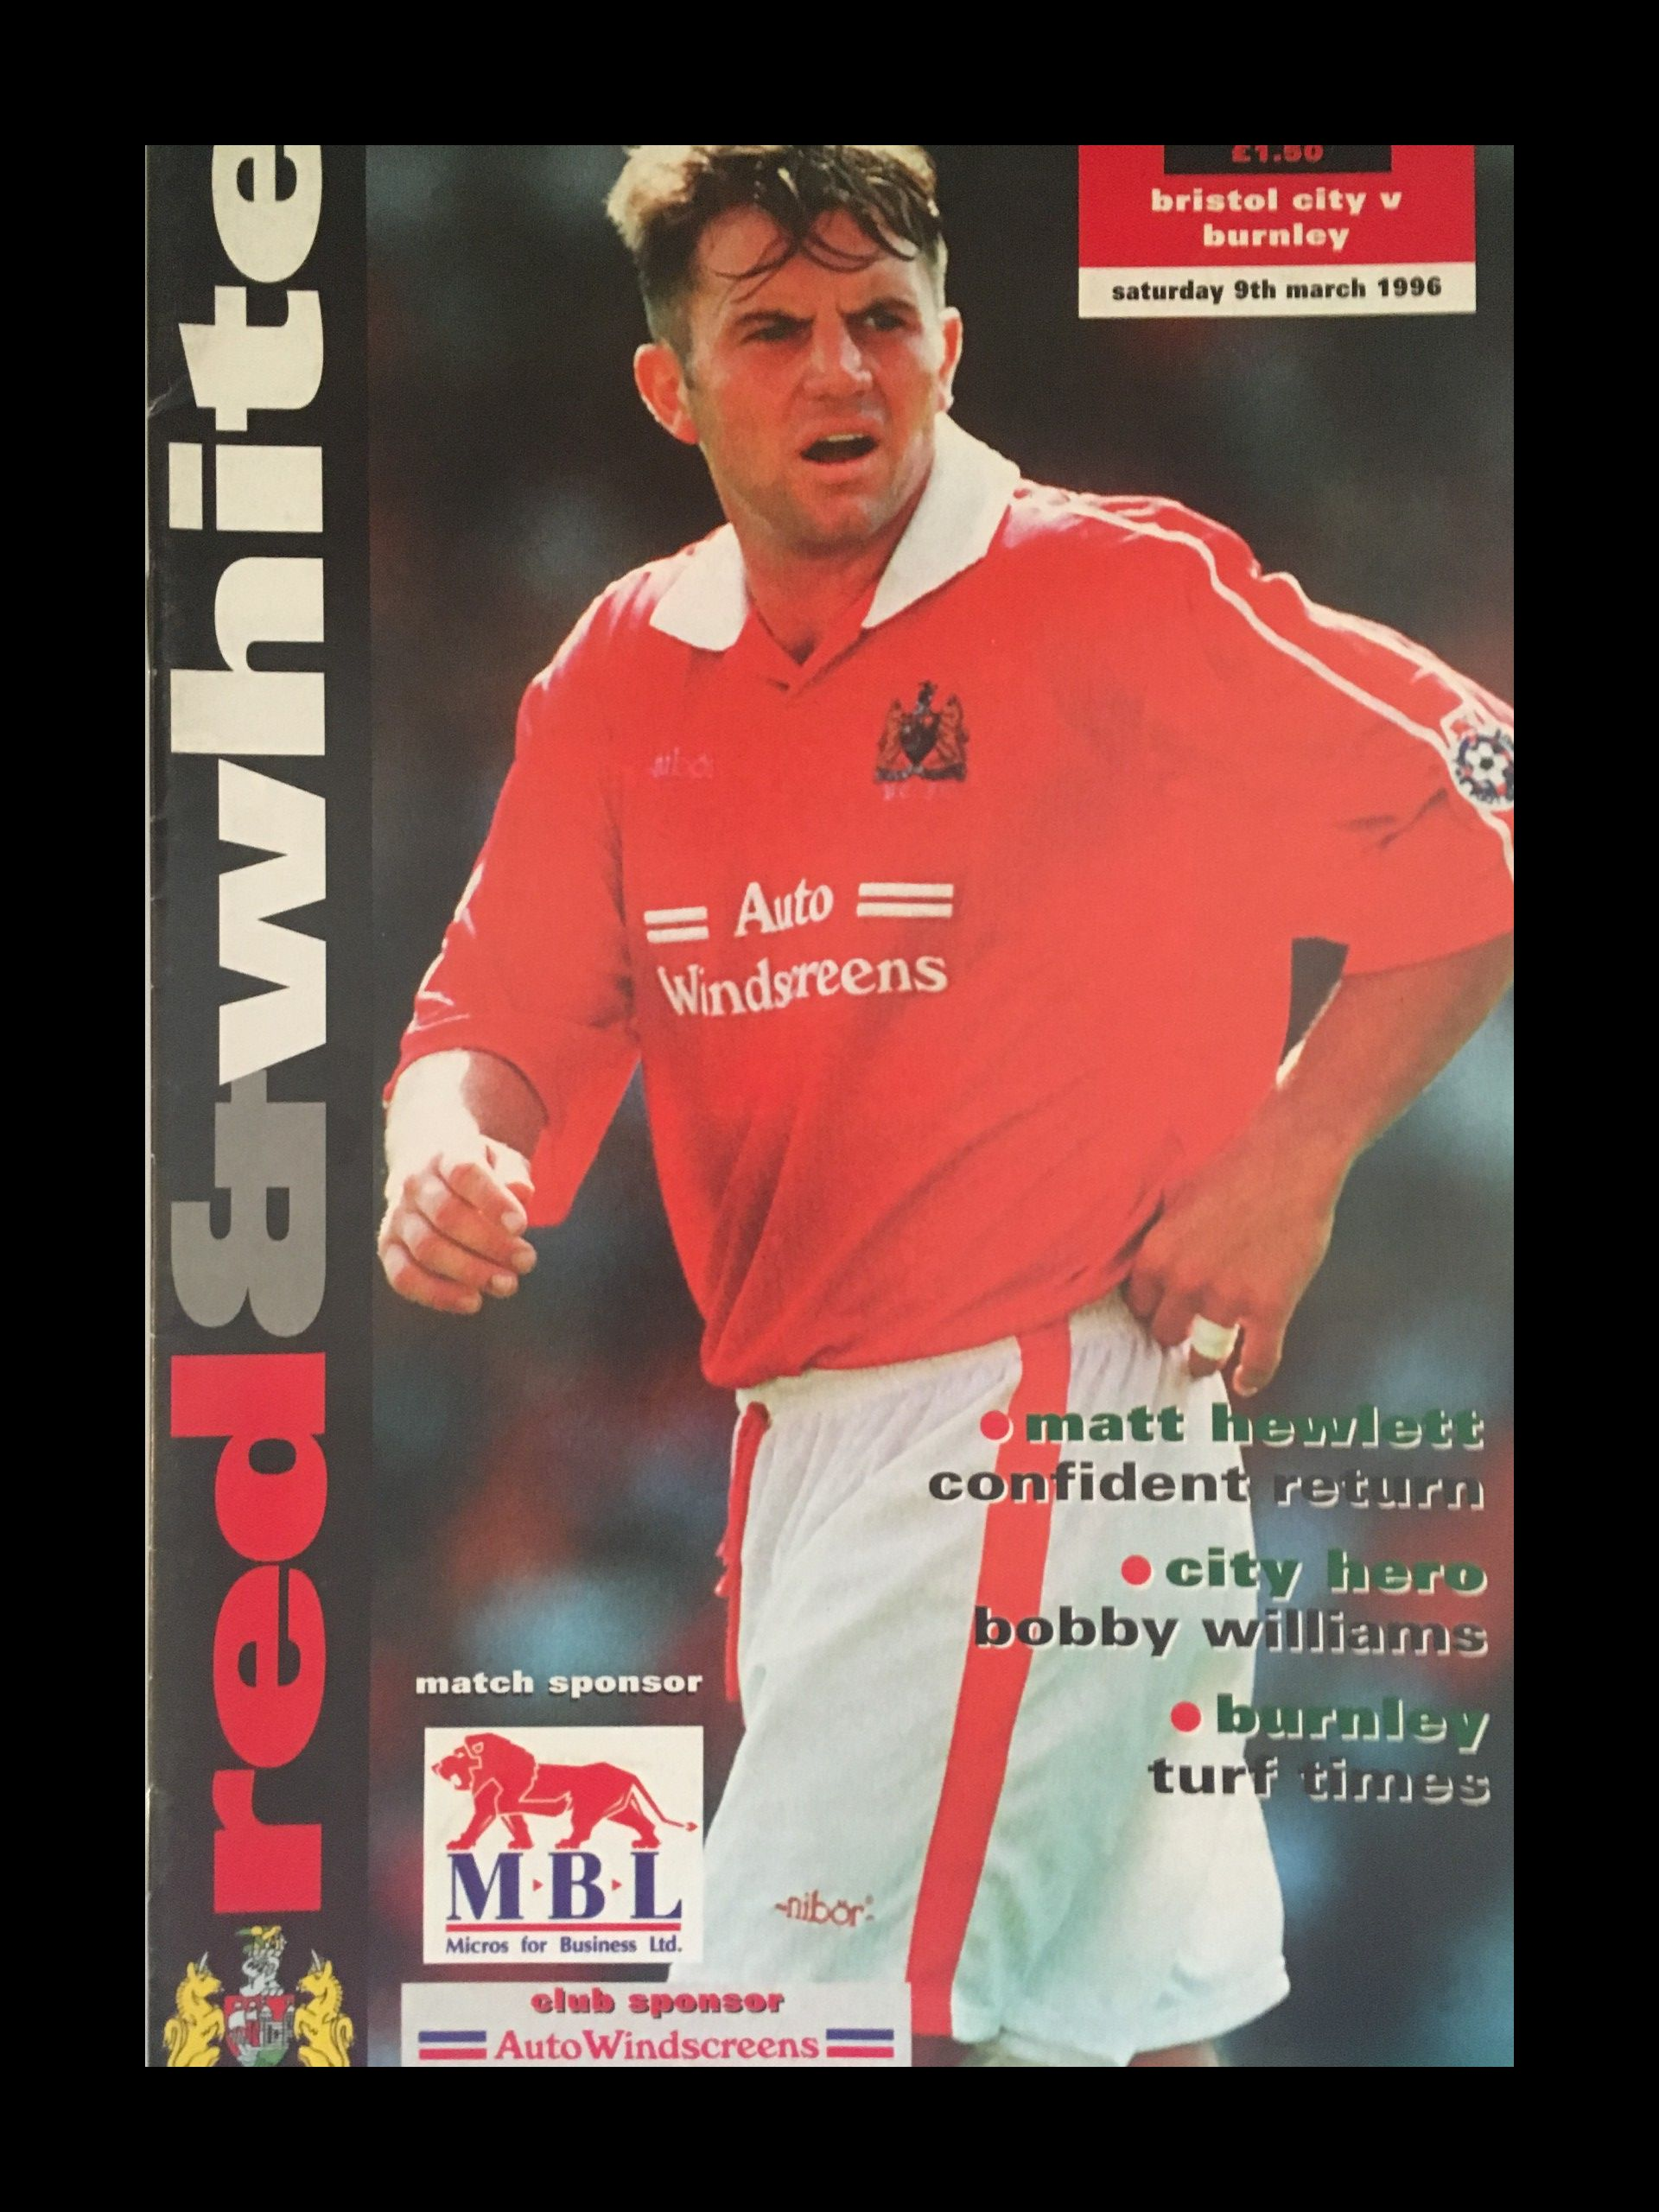 Bristol City v Burnley 09-03-1996 Programme